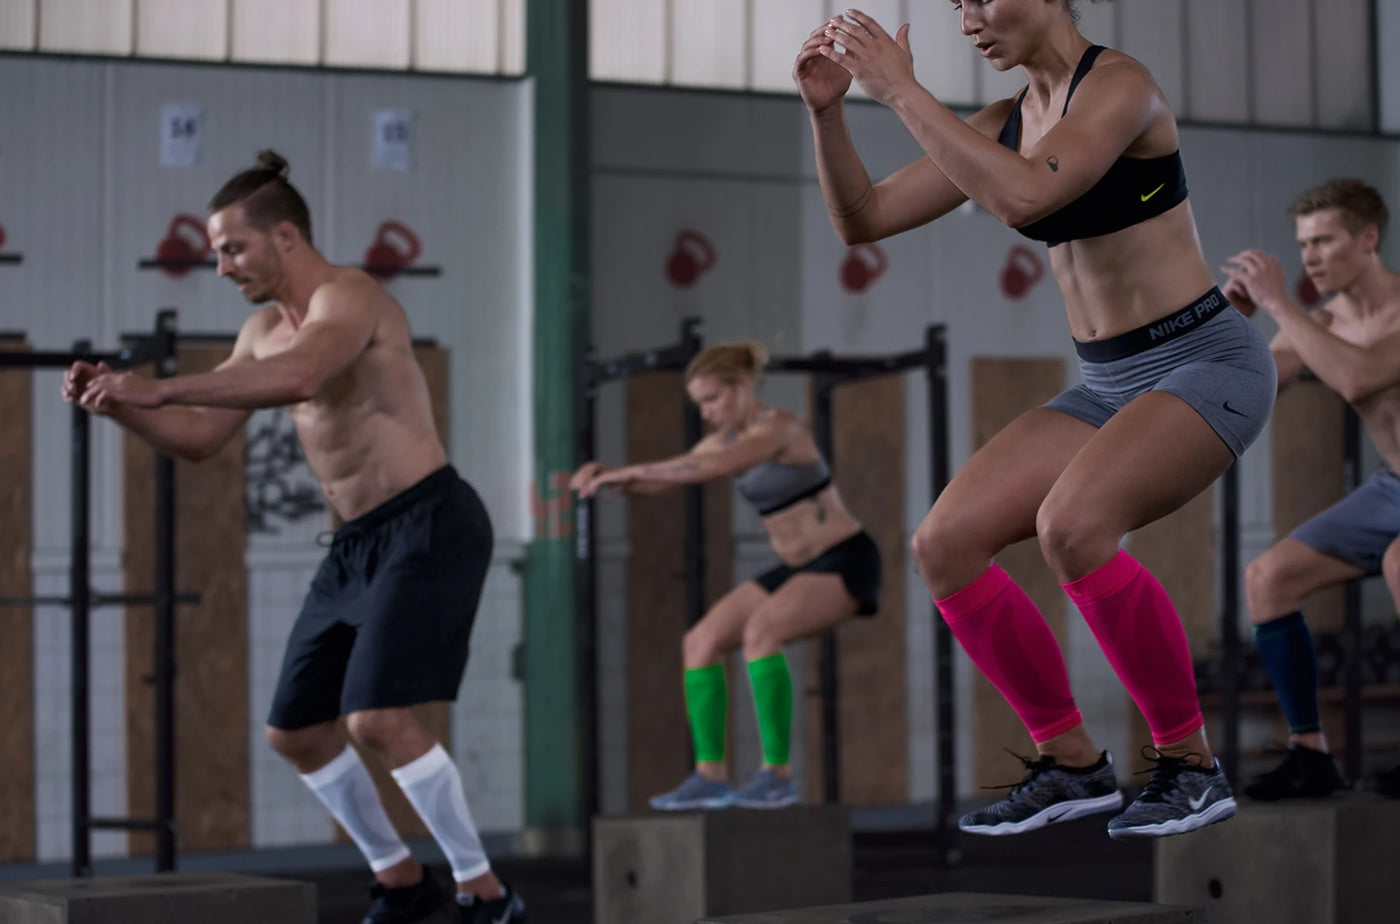 Group of persons doing a Crossfit and all are wearing leg sports support collections made by Bauerfeind.